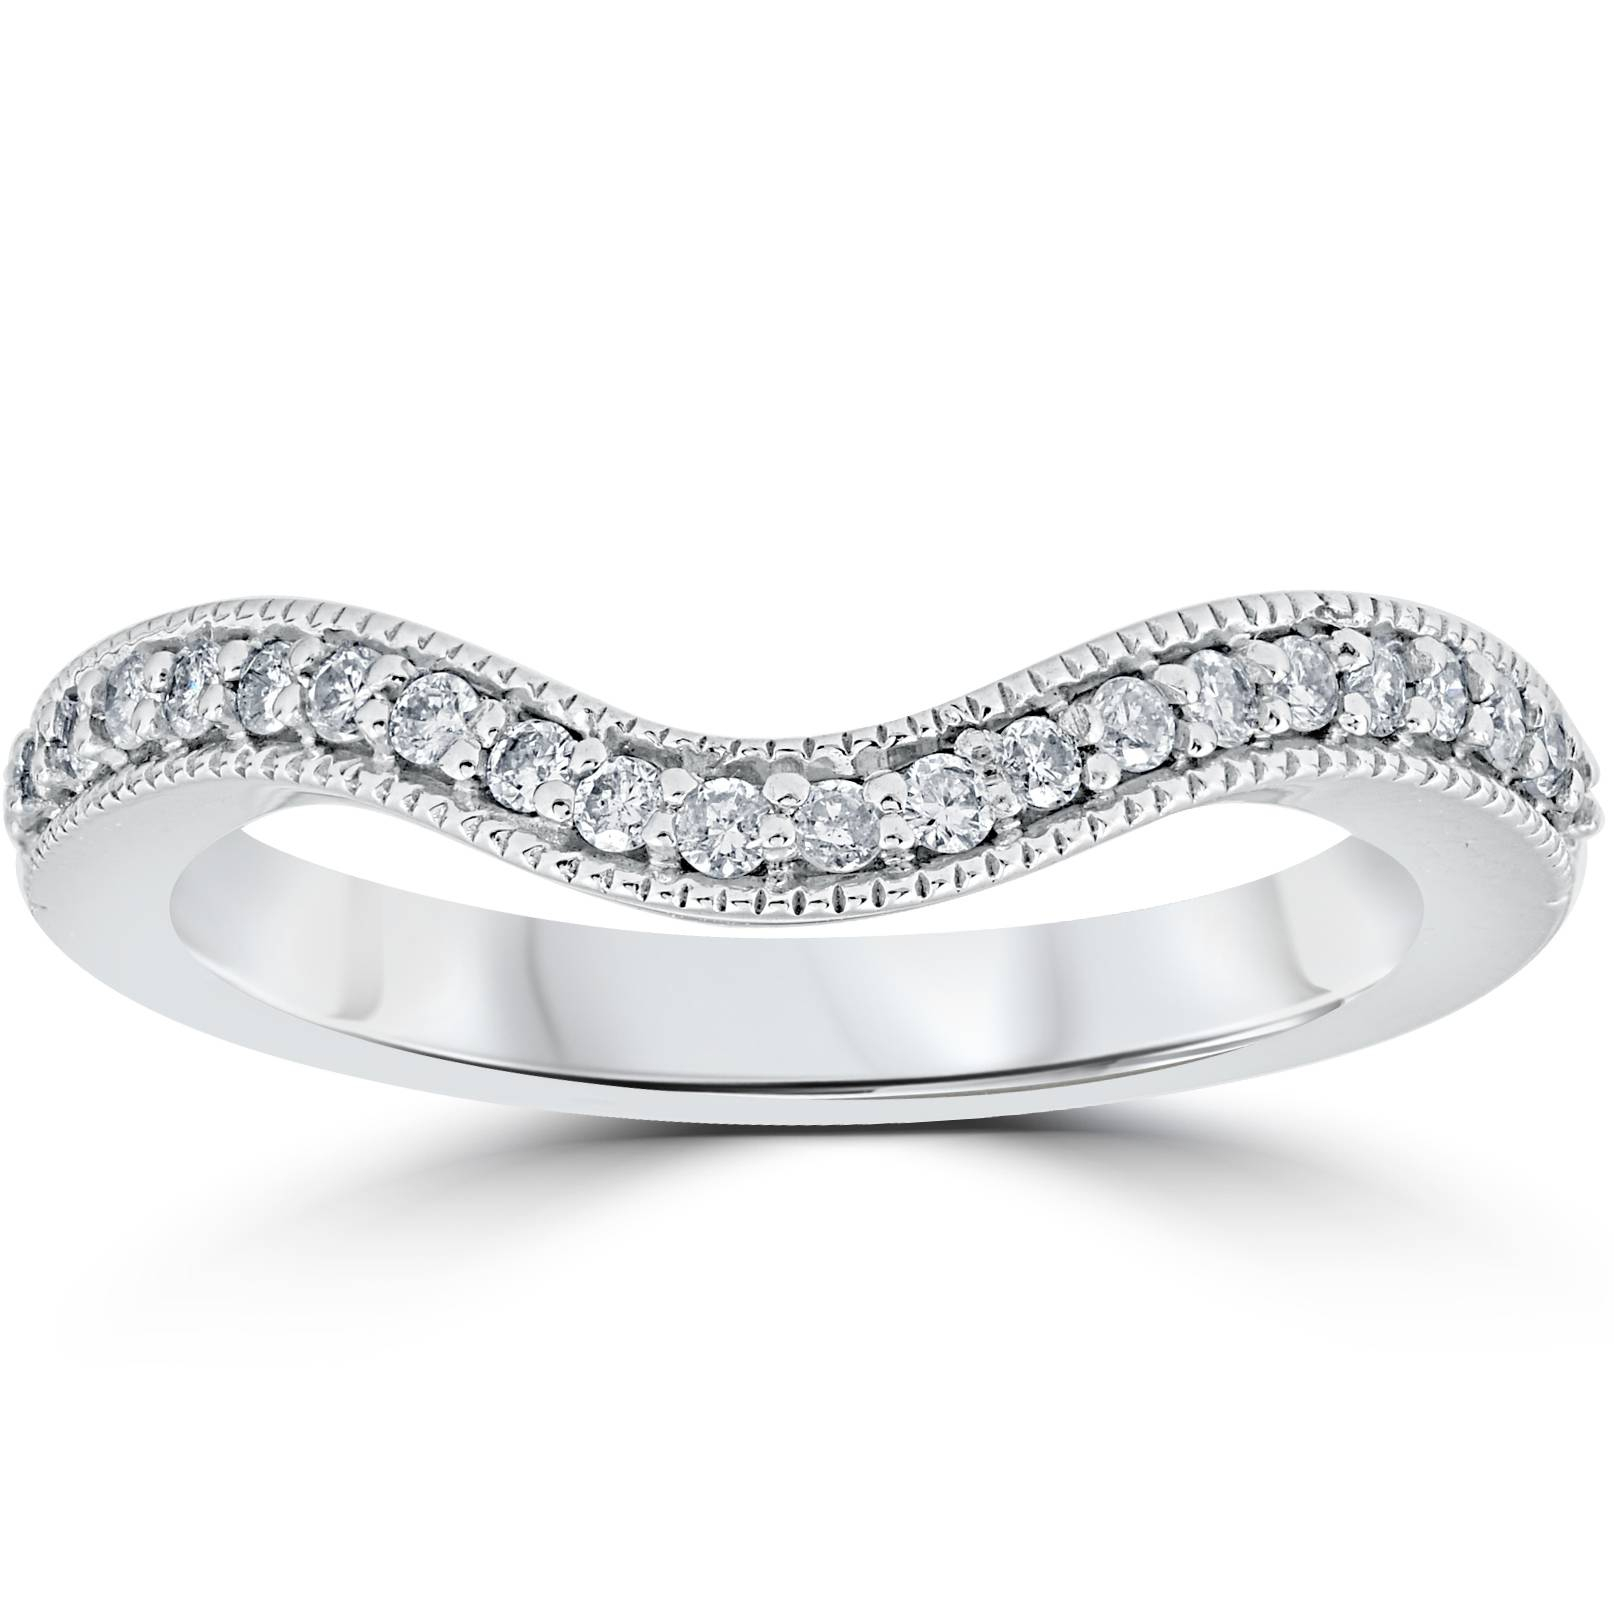 1/5ct Curved Diamond Wedding Guard Enhanced Engagement Band 14k White Gold With Regard To Most Up To Date Enhanced Black And White Diamond Anniversary Ring In White Gold (View 11 of 25)